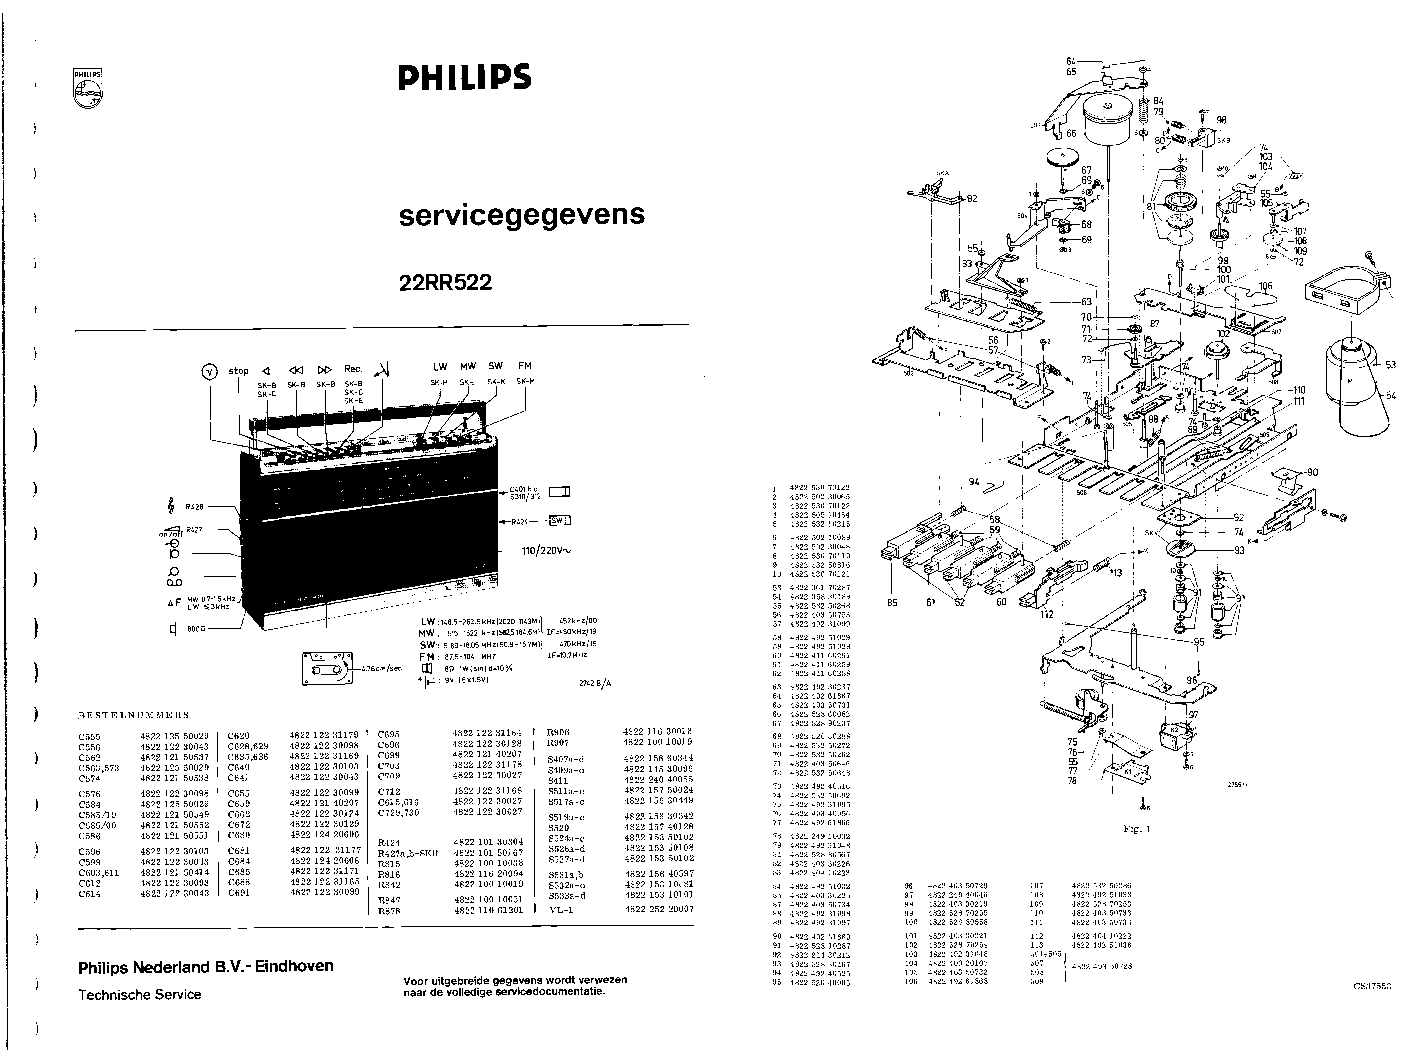 PHILIPS 22RR522 Service Manual download, schematics